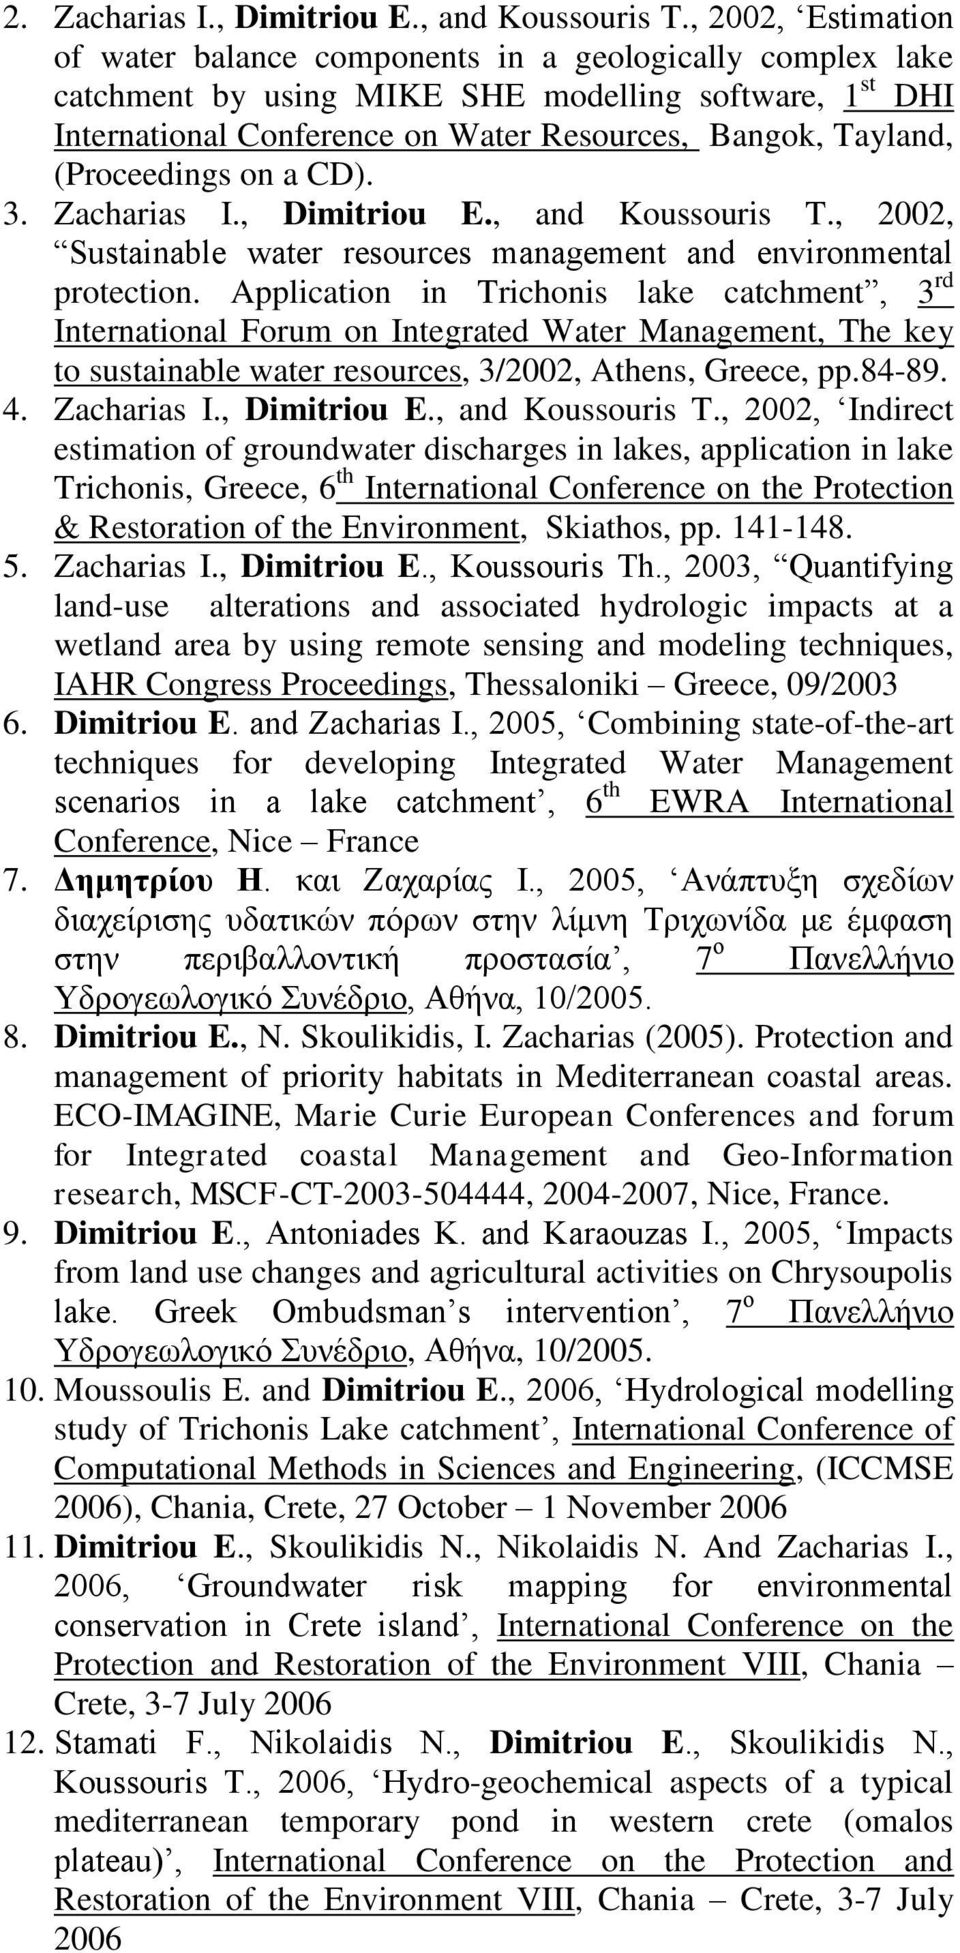 (Proceedings on a CD). 3. Zacharias I., Dimitriou E., and Koussouris T., 2002, Sustainable water resources management and environmental protection.